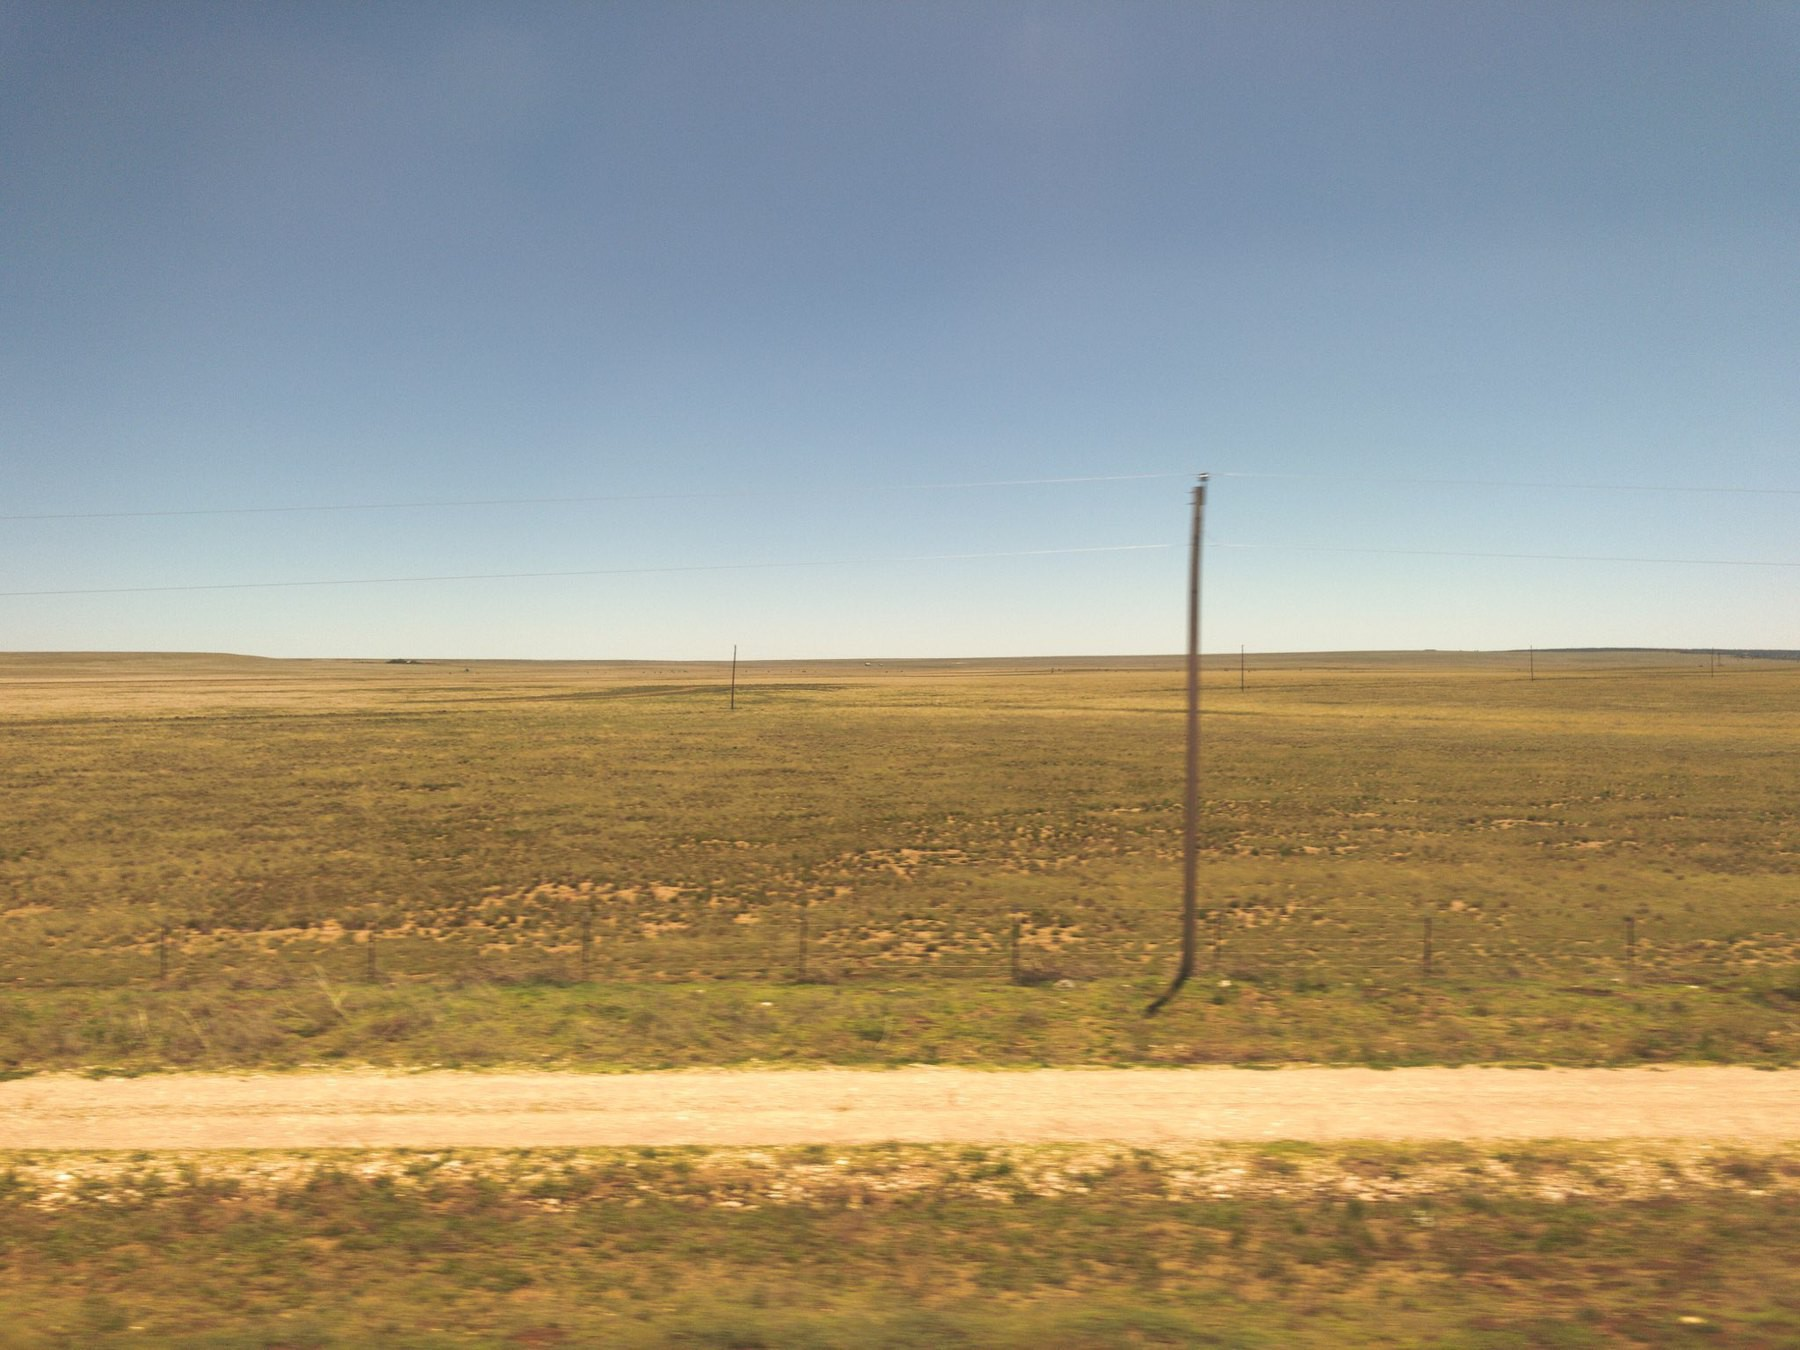 View of dry prairie from train window